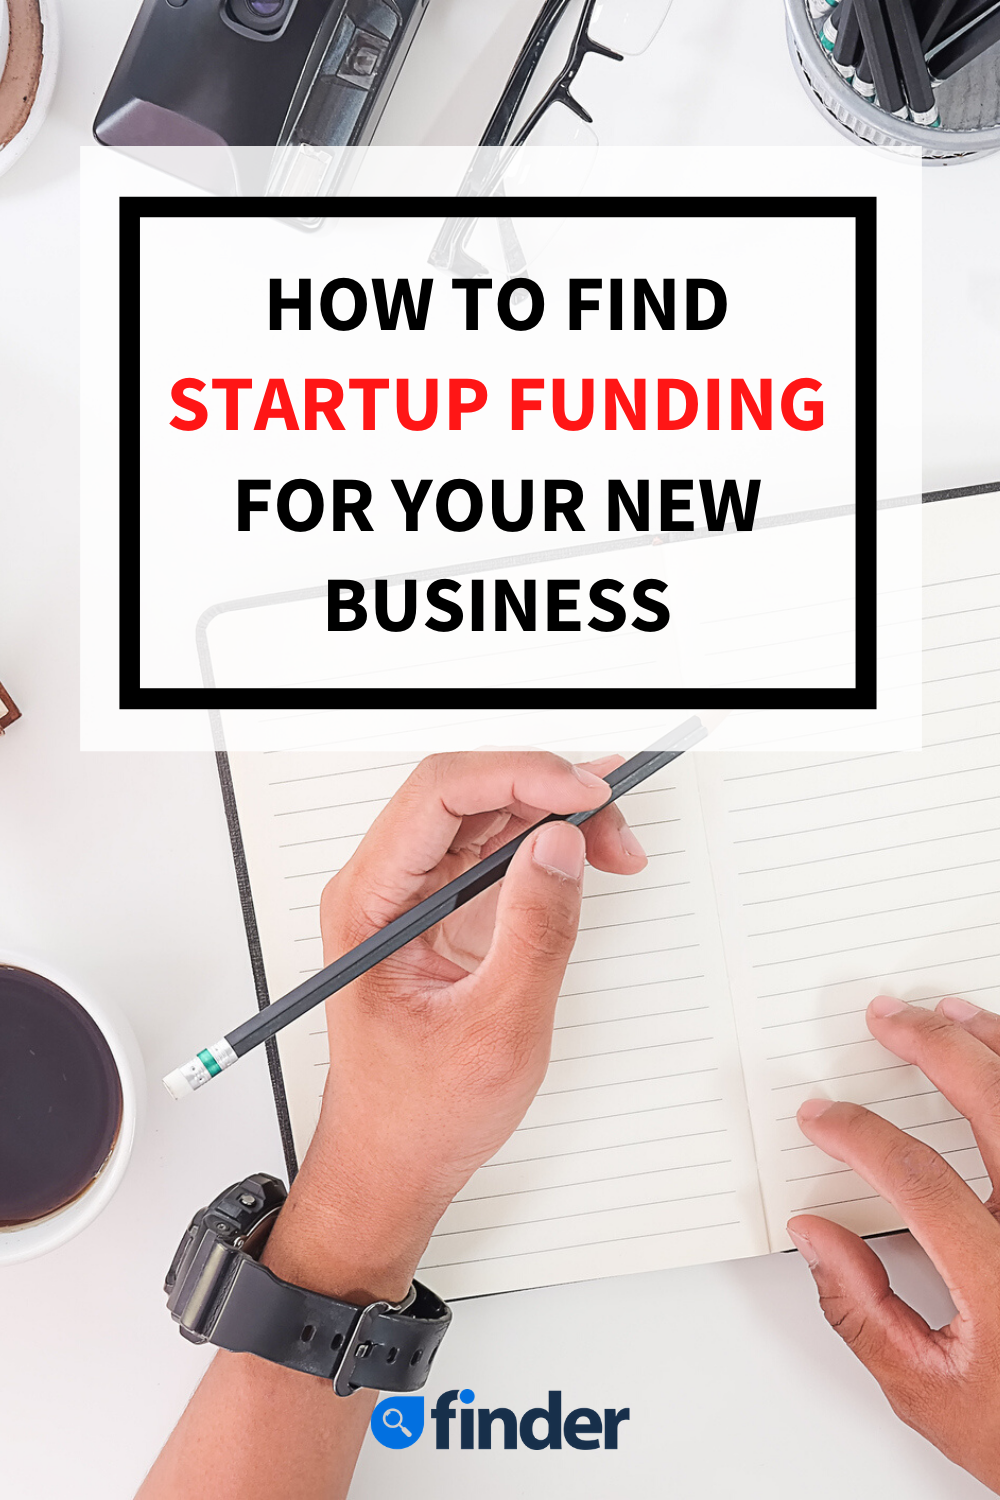 How To Open Small Business With No Money